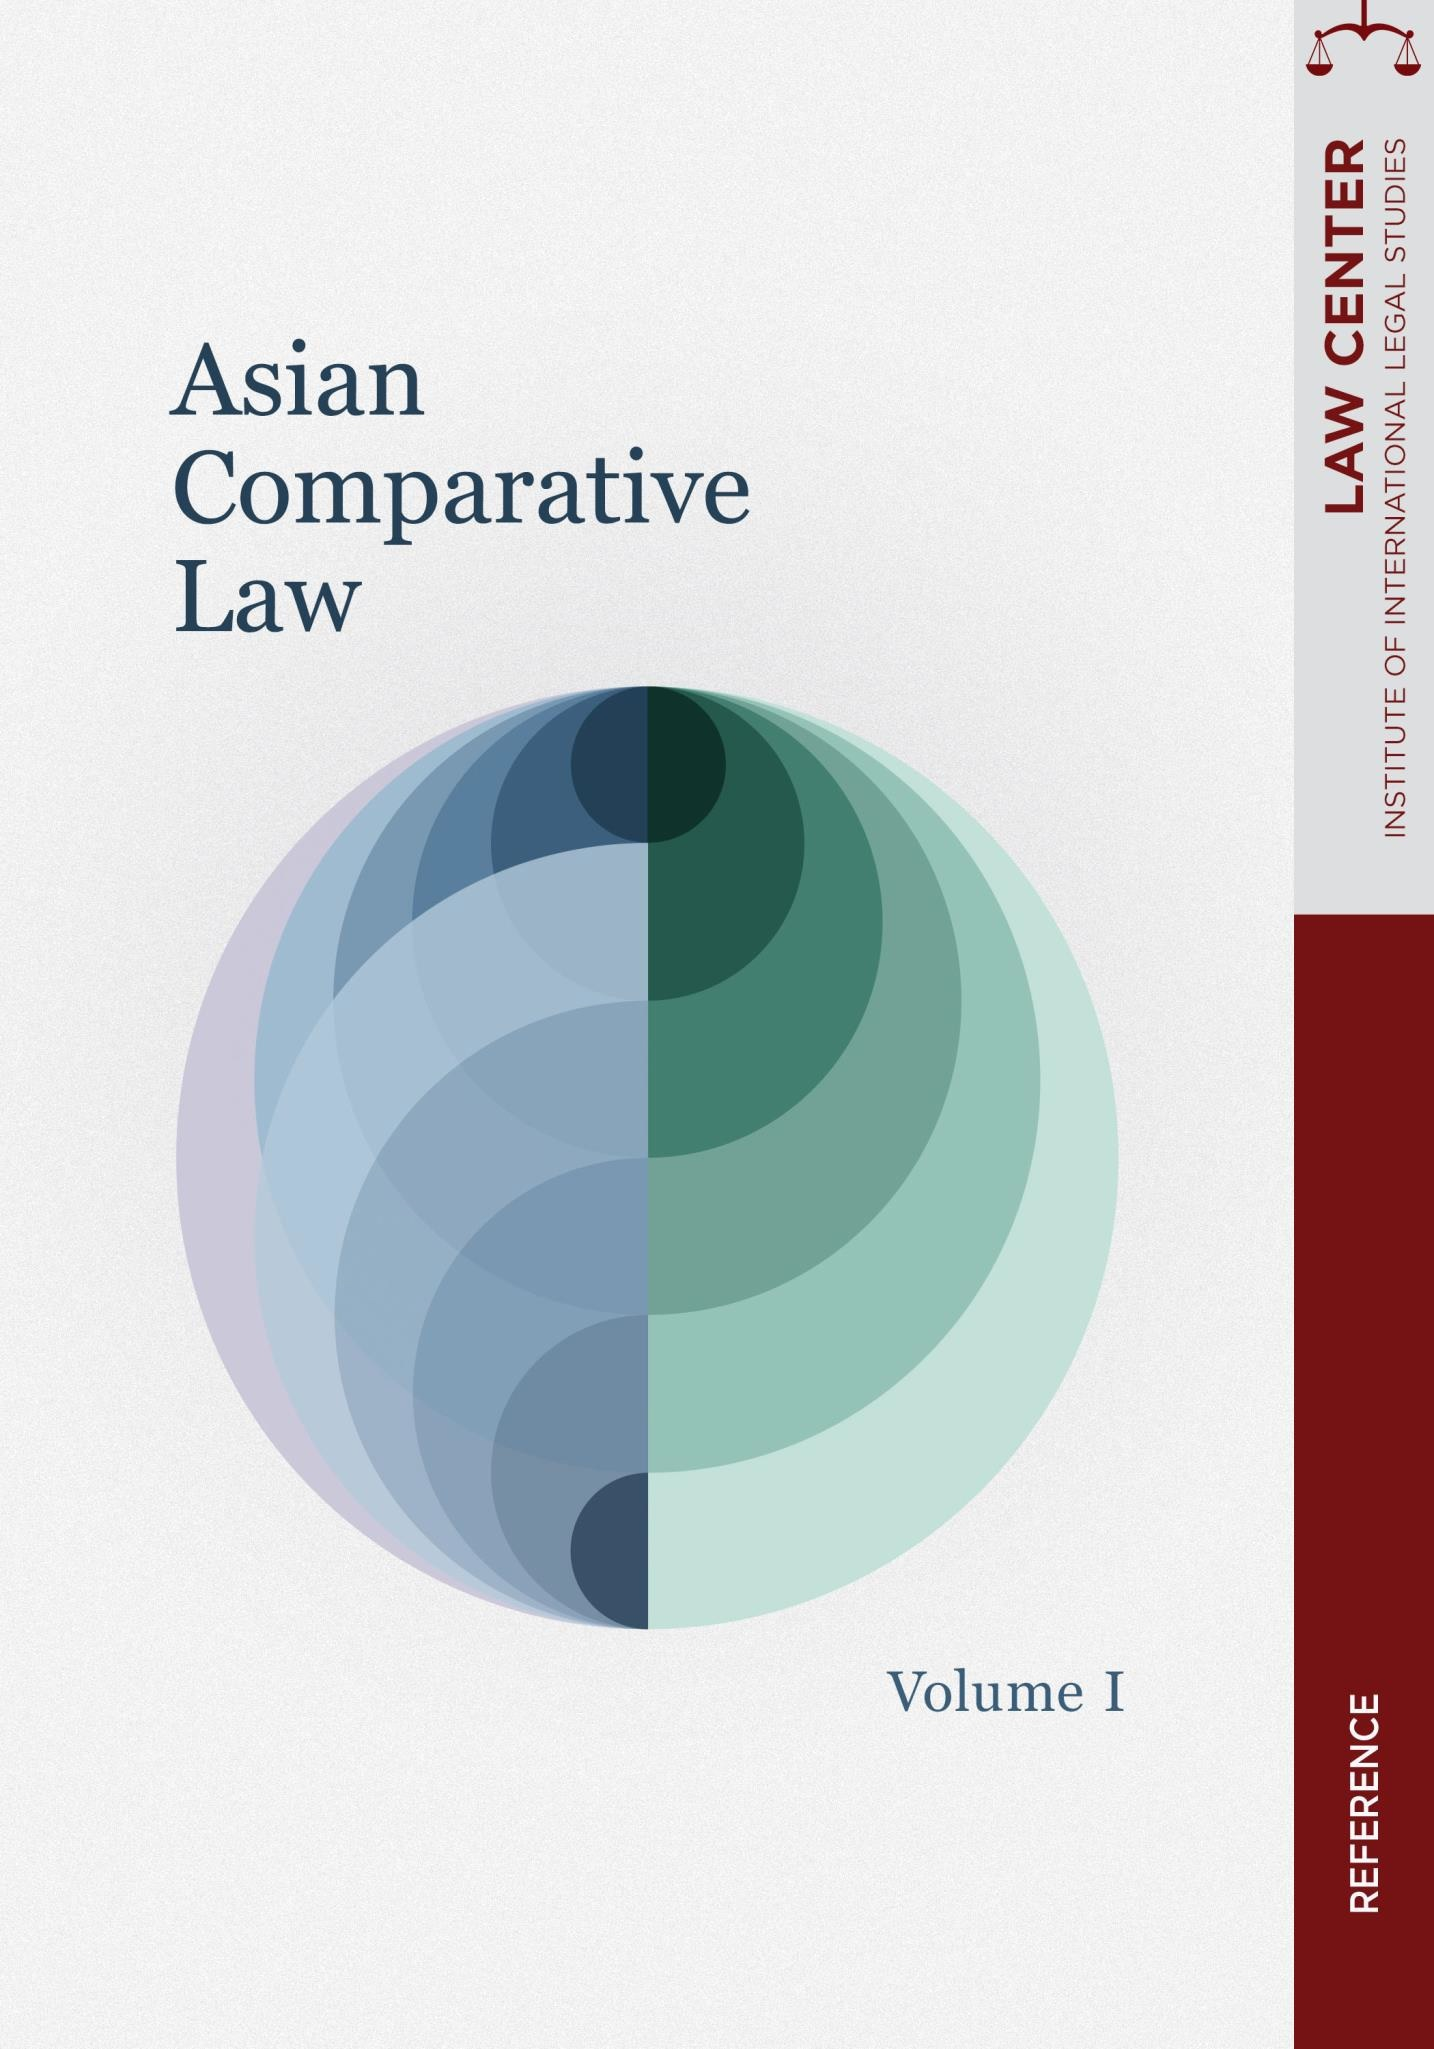 Asian Comparative Law Project Virtual Book Launch